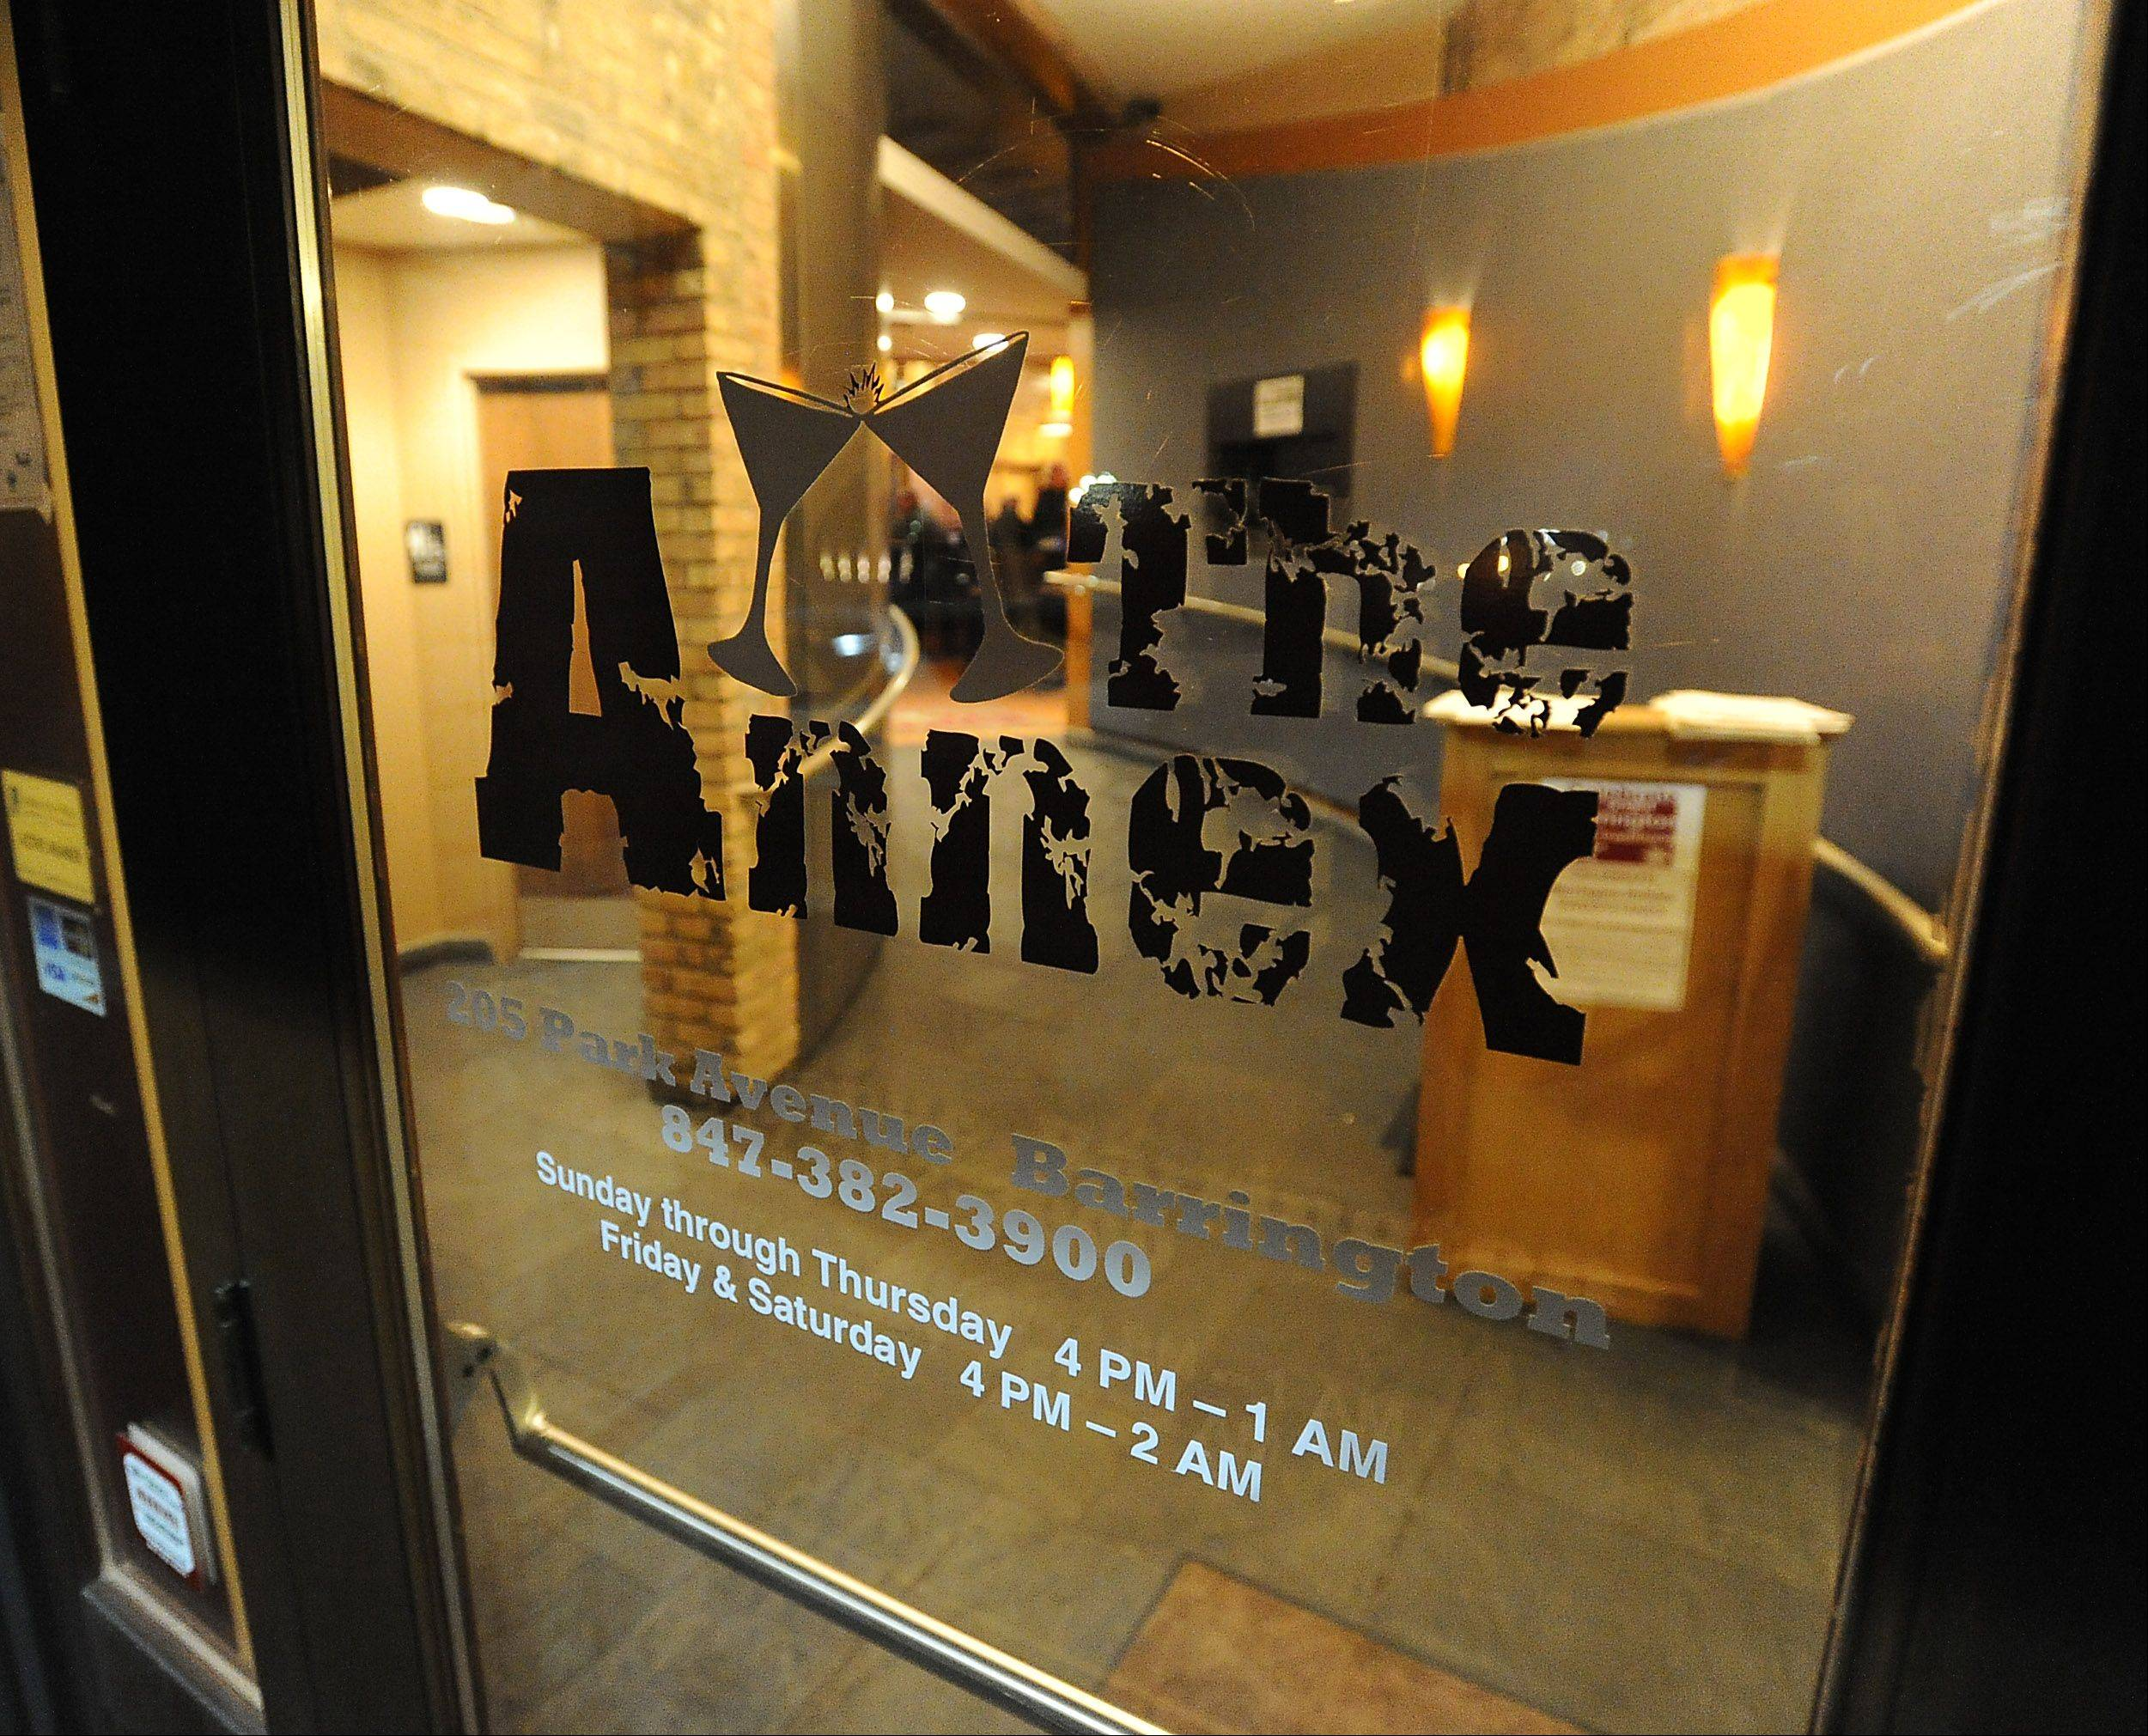 The Annex opened in the space formerly occupied by the Park Avenue Wine Bar.